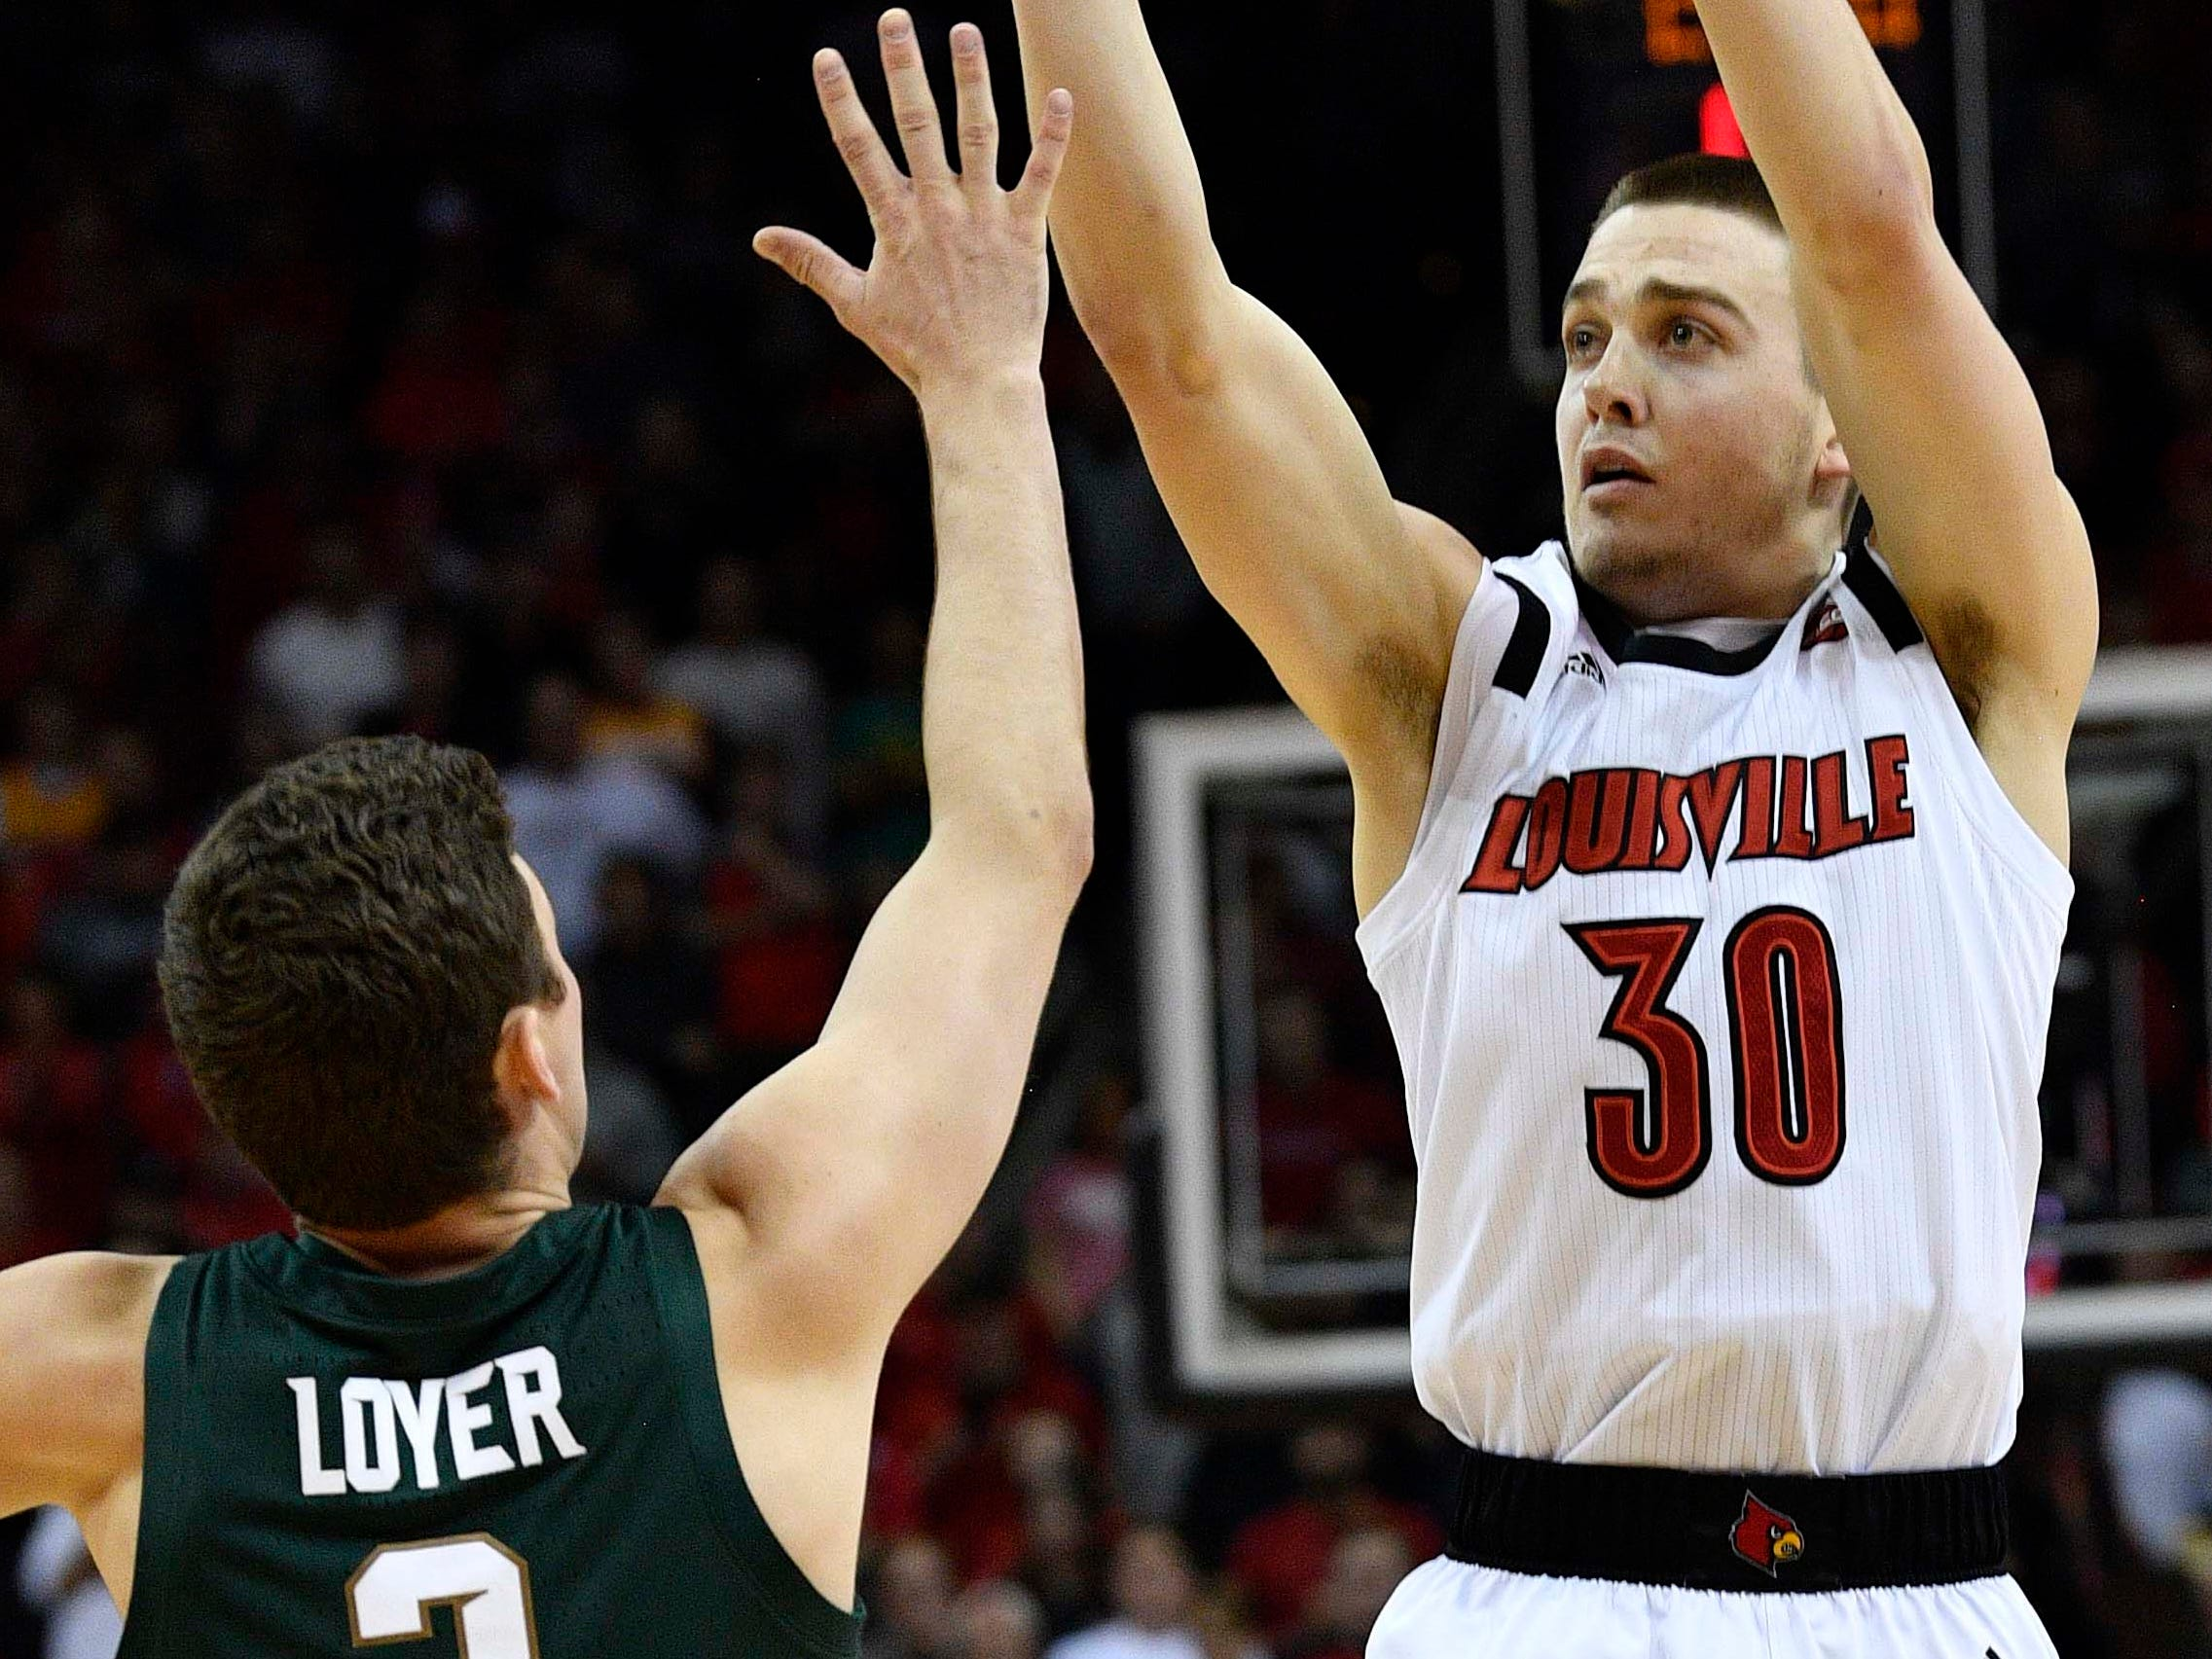 Louisville Cardinals guard Ryan McMahon (30) shoots against Michigan State Spartans guard Foster Loyer (3) during the second half at KFC Yum! Center. Louisville defeated Michigan State 82-78.